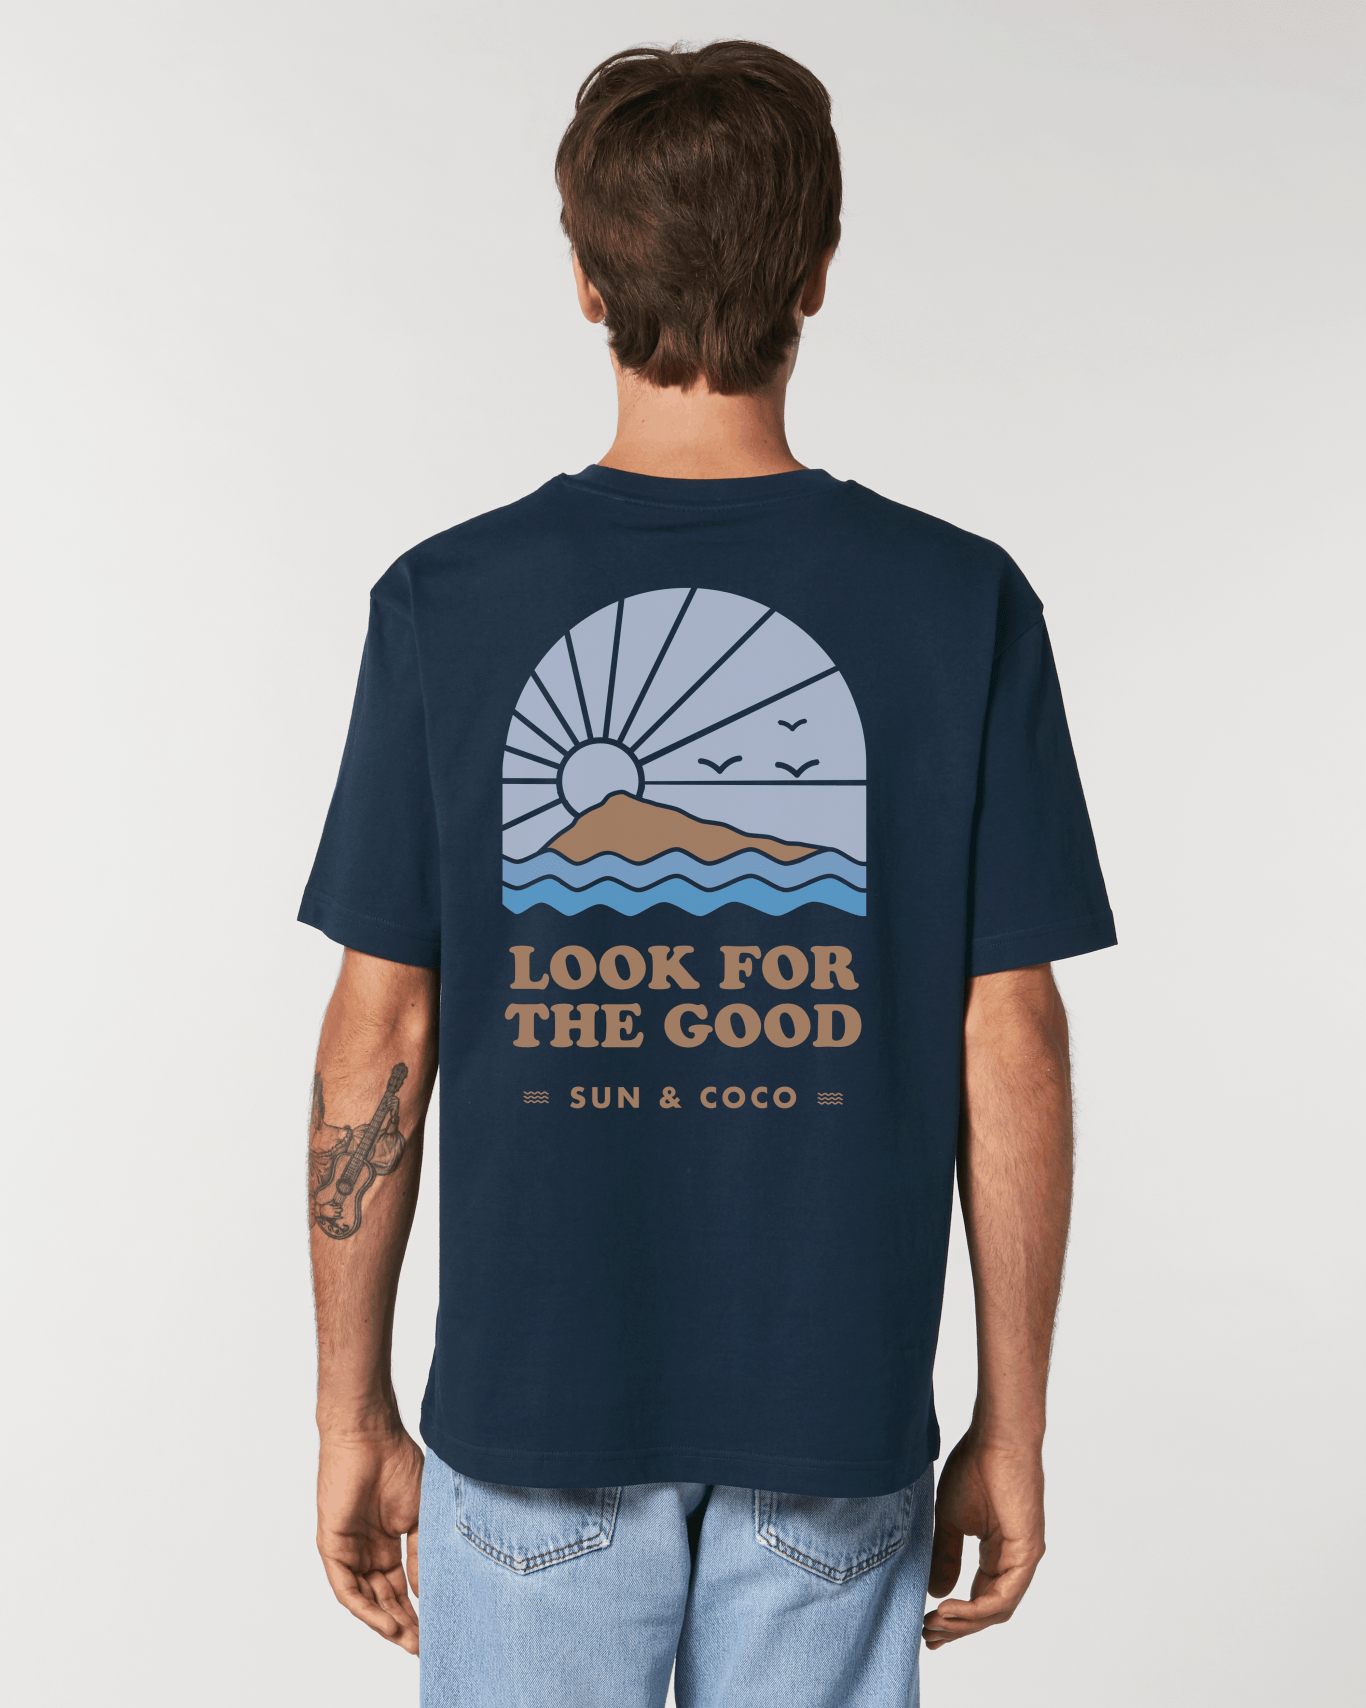 LOOK FOR THE GOOD – t-shirt for men